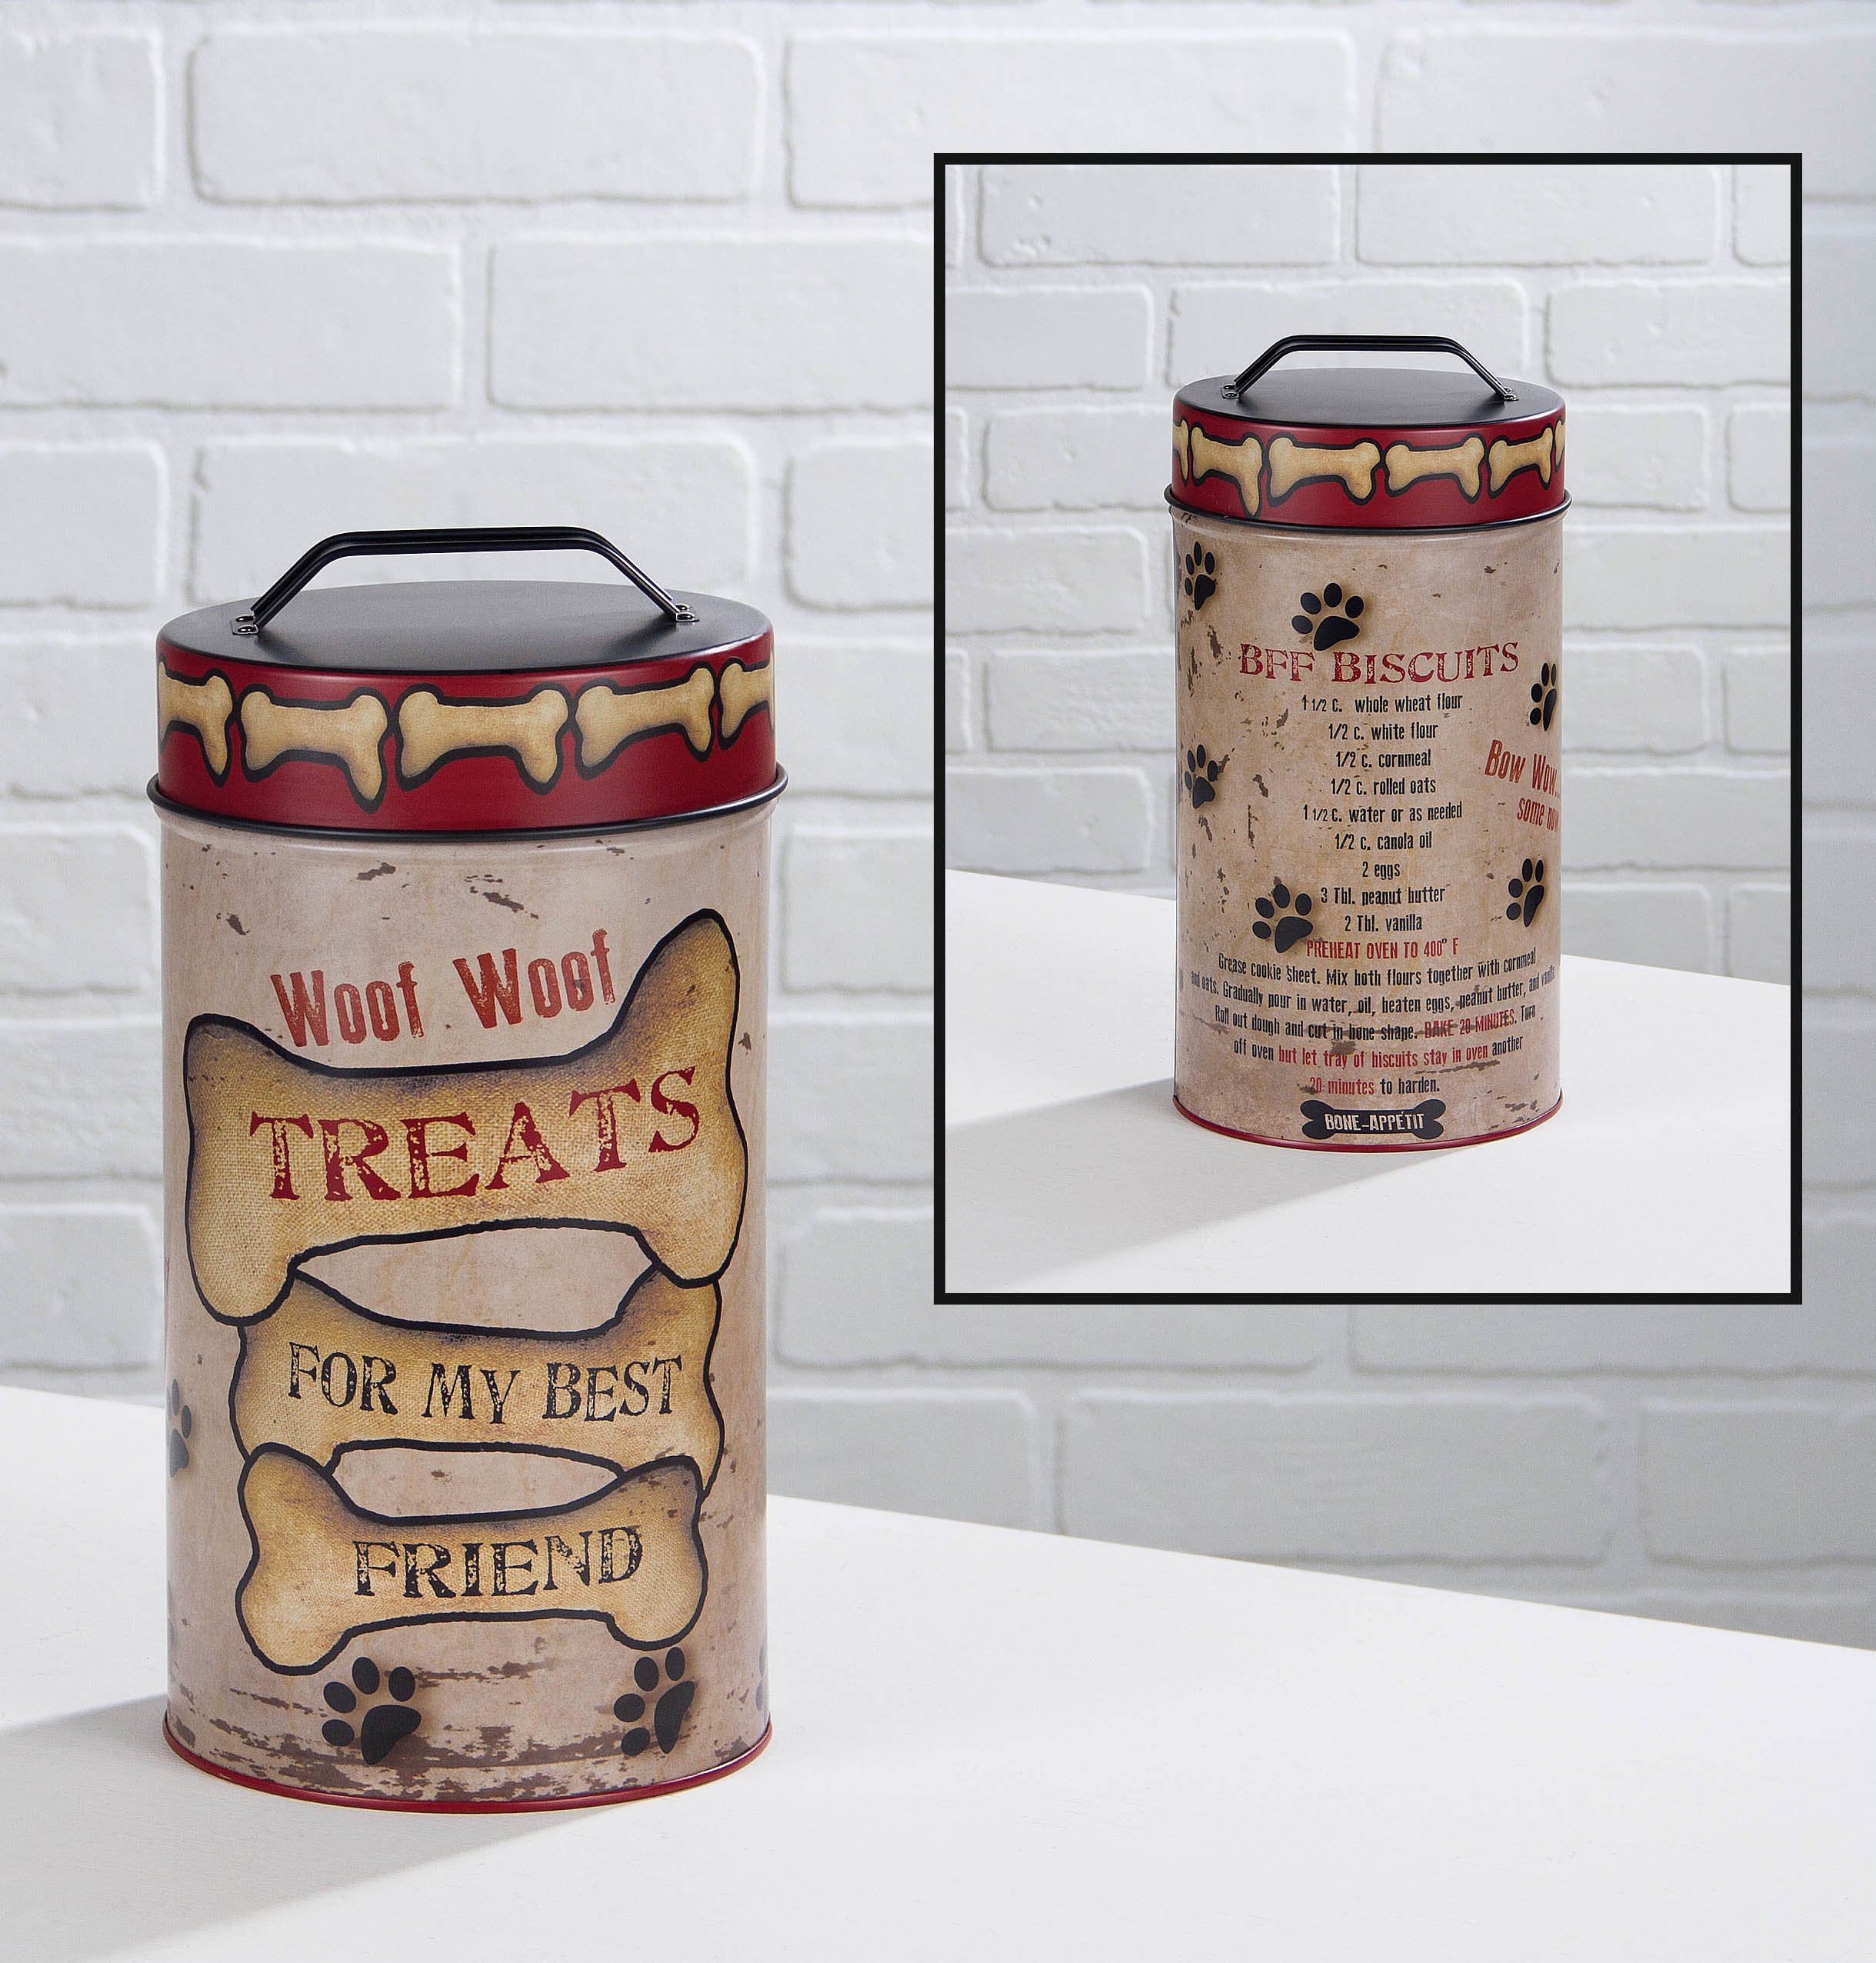 Decorative Dog Treat Tin Container with Lid with Biscuit Recipe